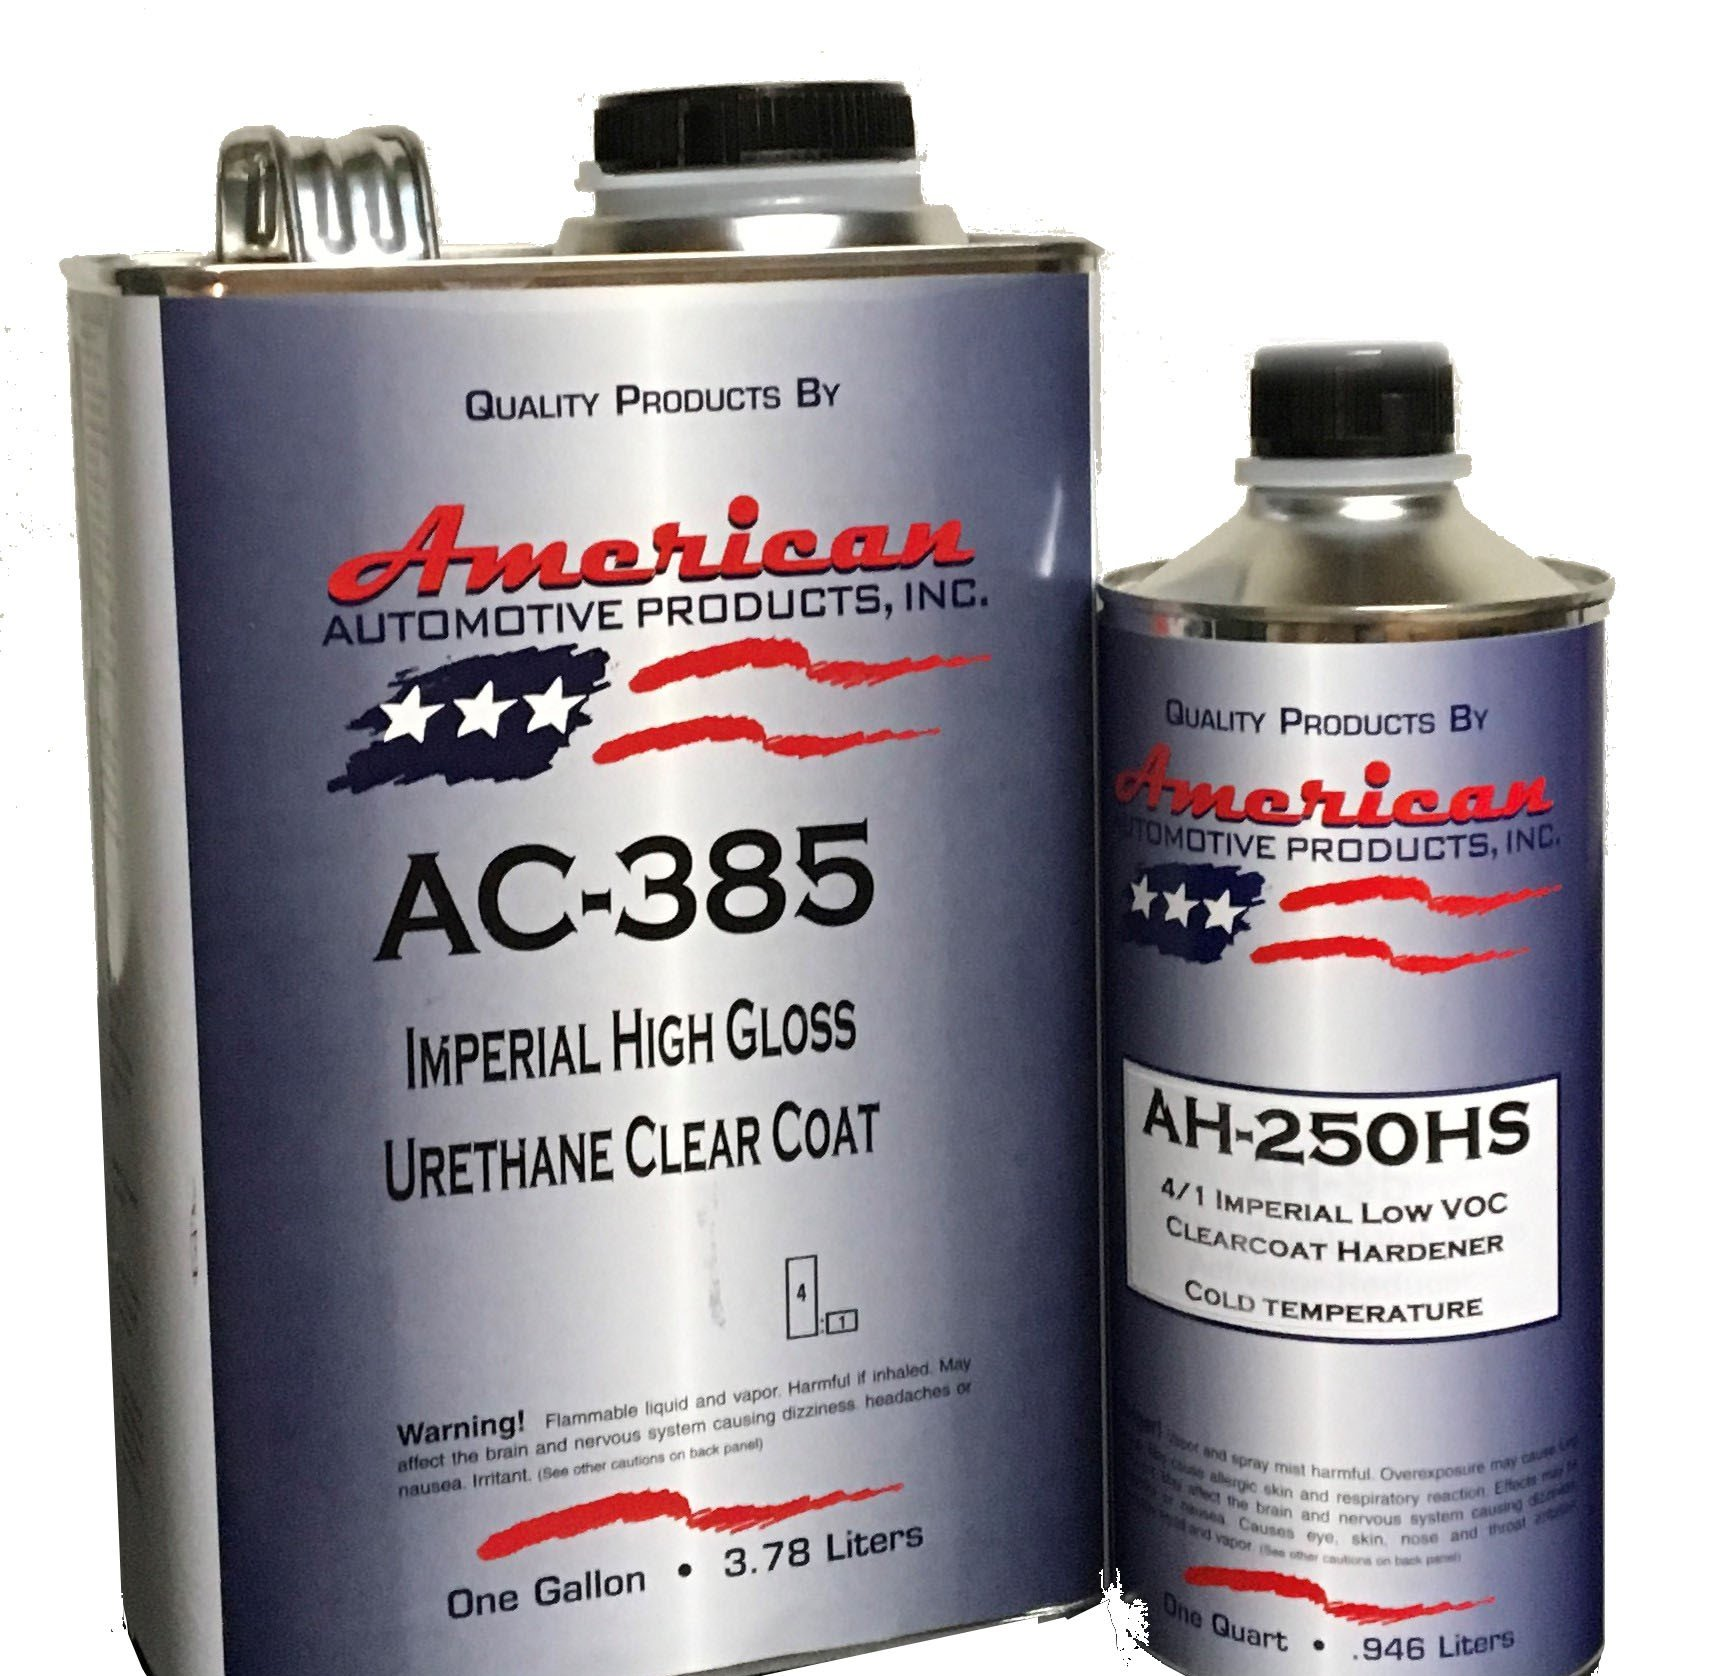 AC-385HS Automotive 2K Urethane Clear Coat Gallon Clearcoat Kit Fast Activator by American Automotive Products